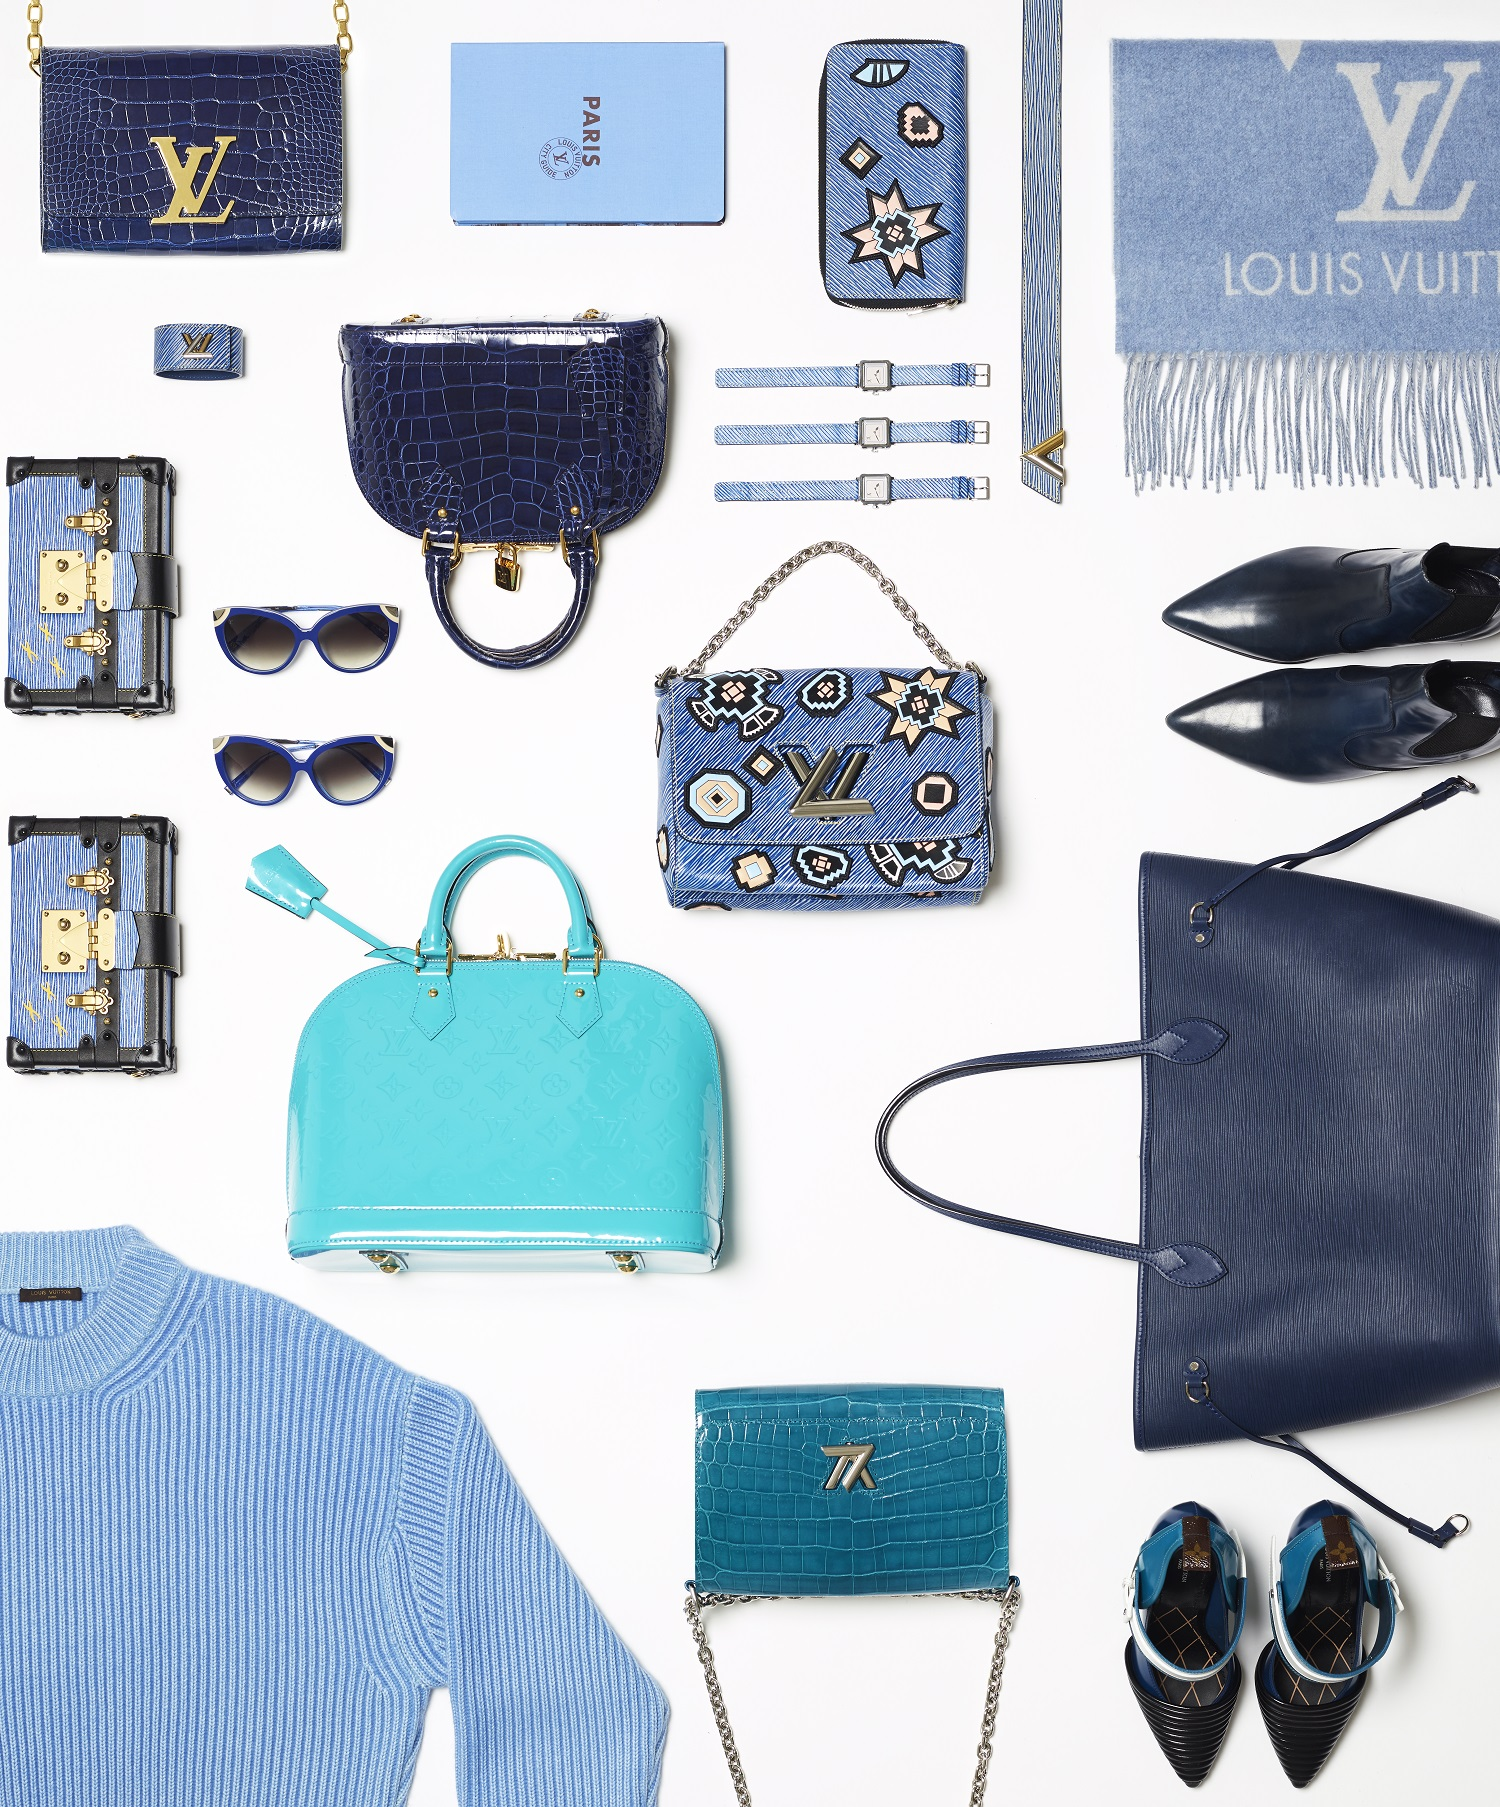 Louis-vuitton-true-blues